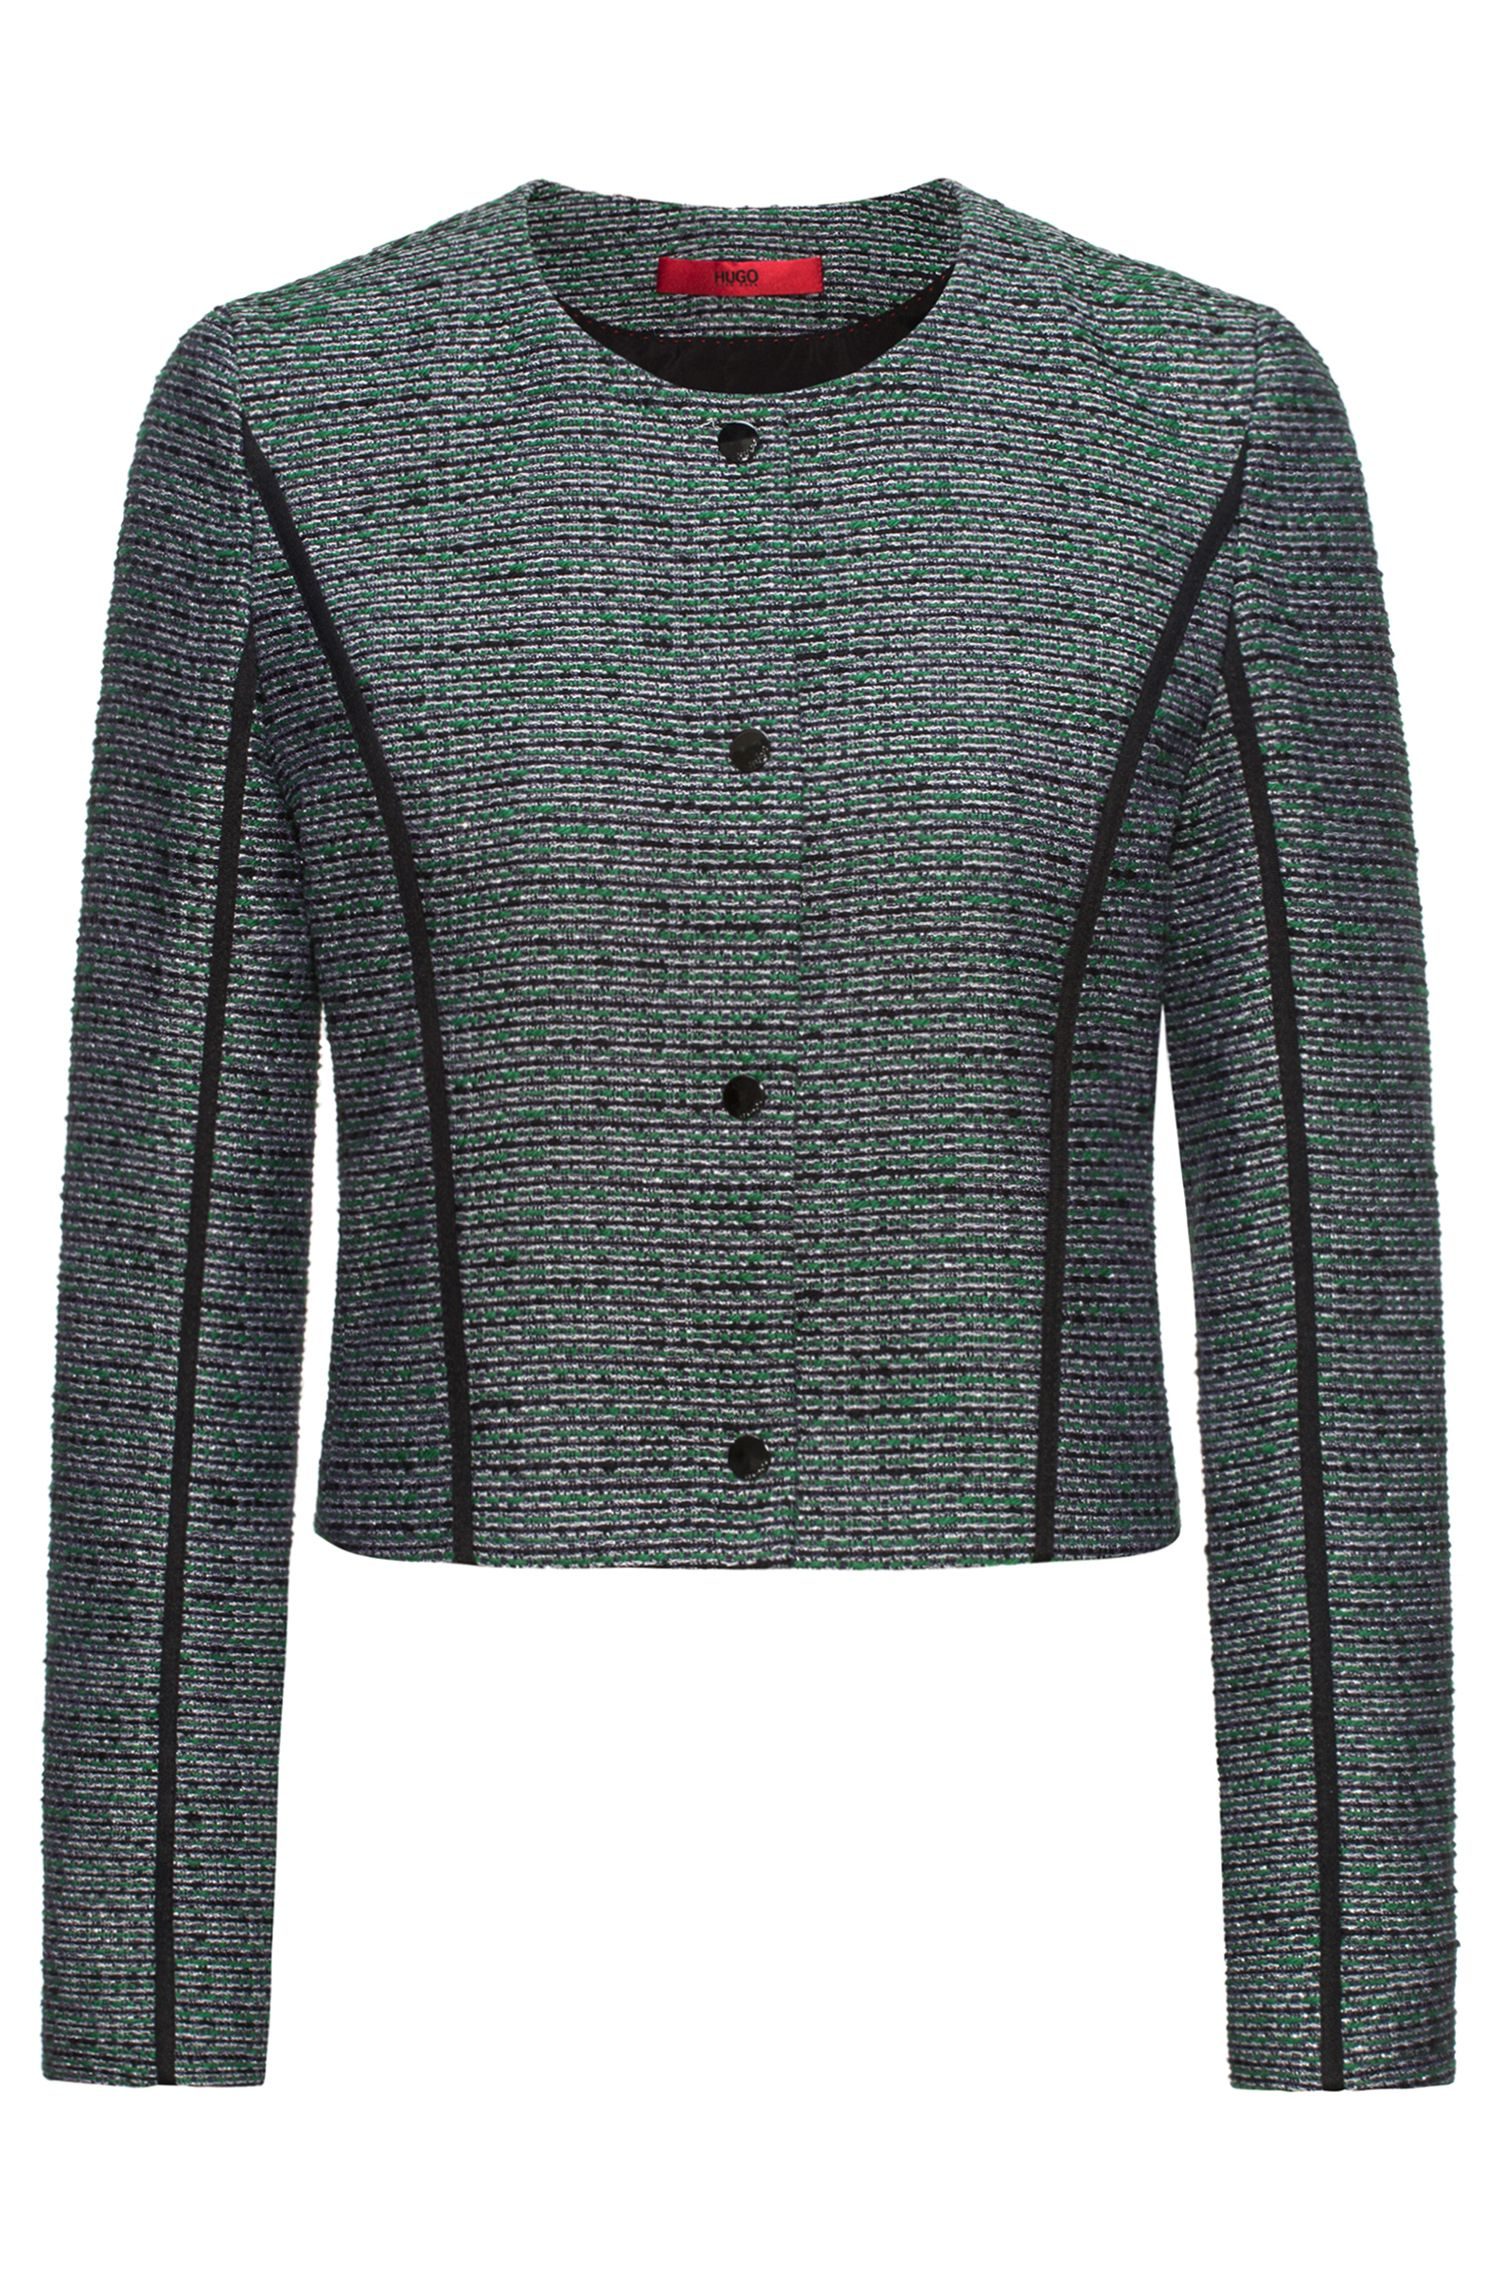 Relaxed-fit cropped tweed jacket with contrast piping, Patterned